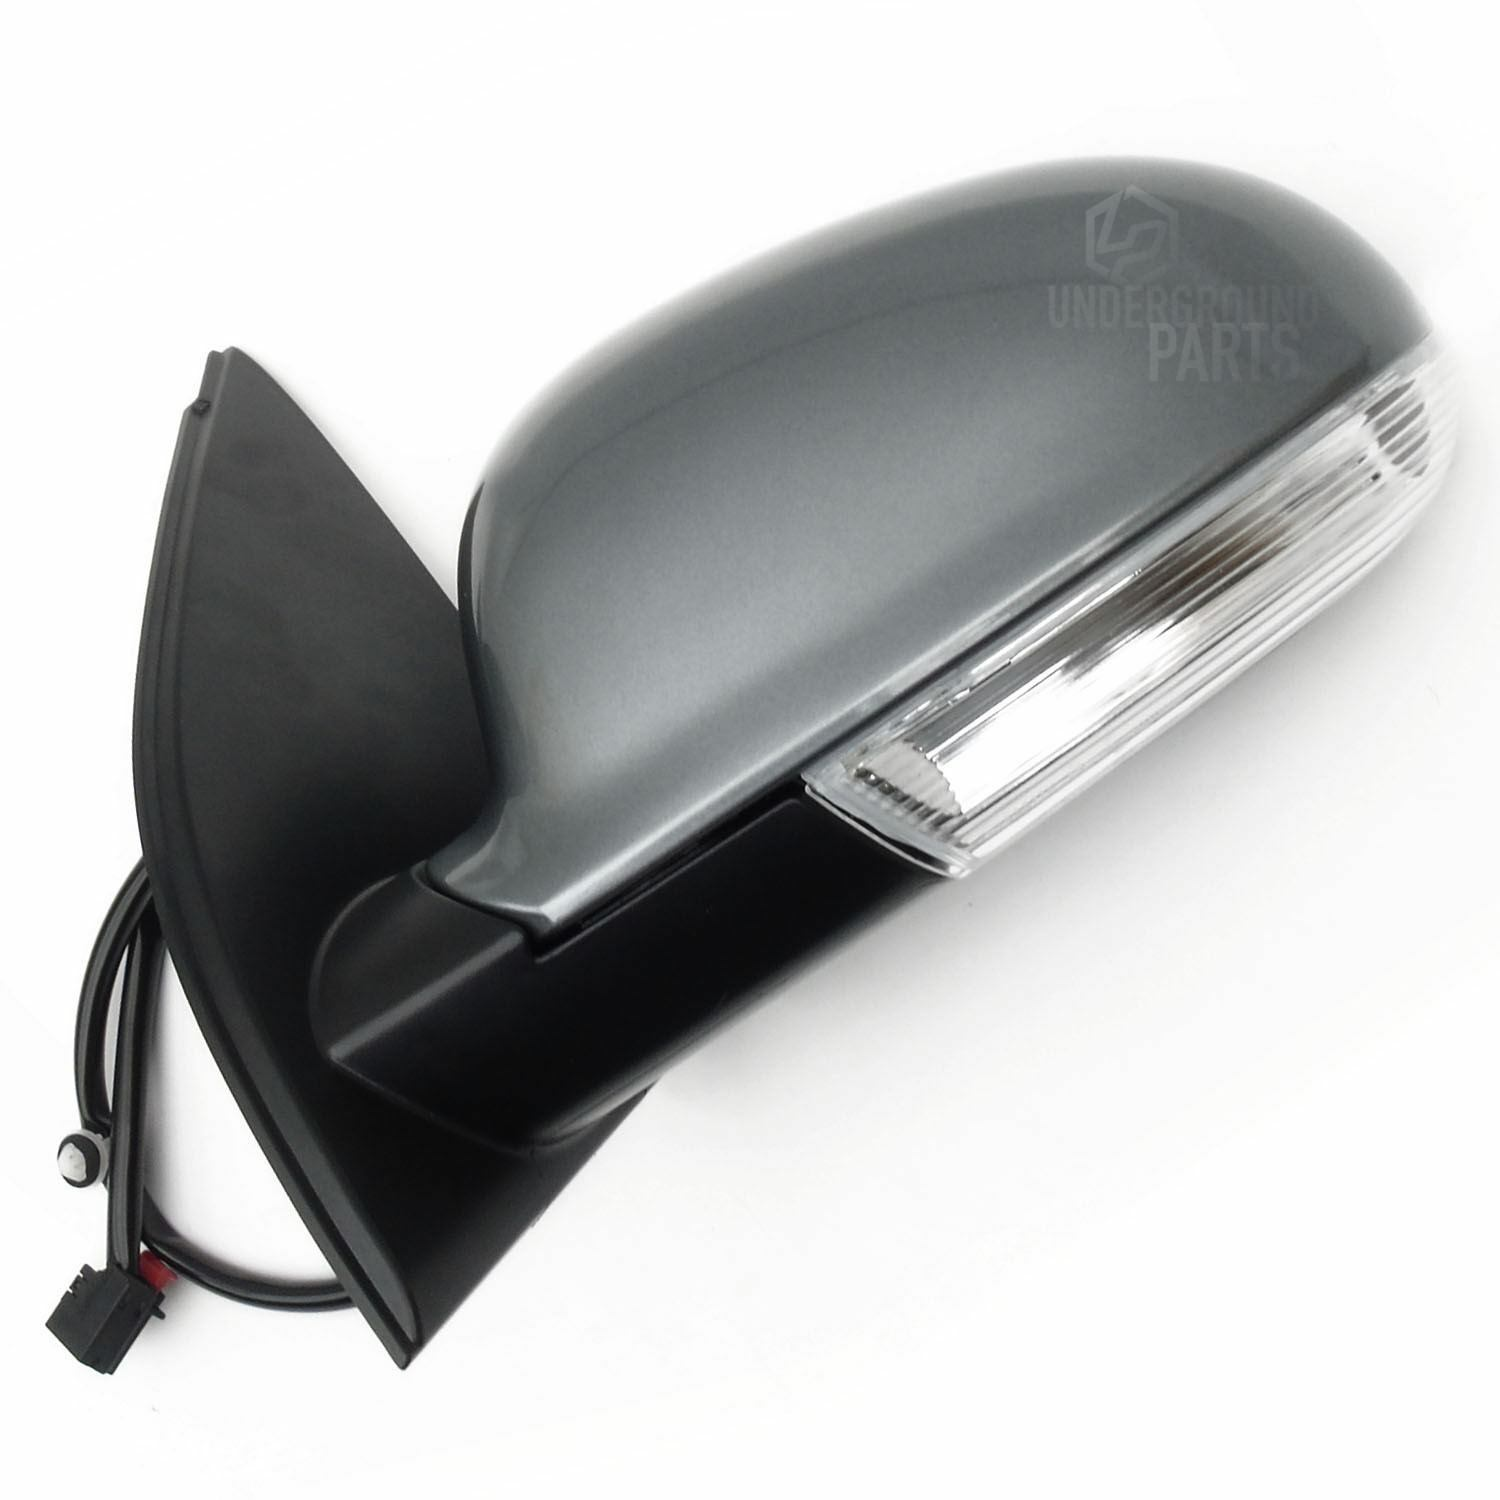 Passenger side LHS black wing mirror cover for Renault Clio 05-09 mk 3 casing